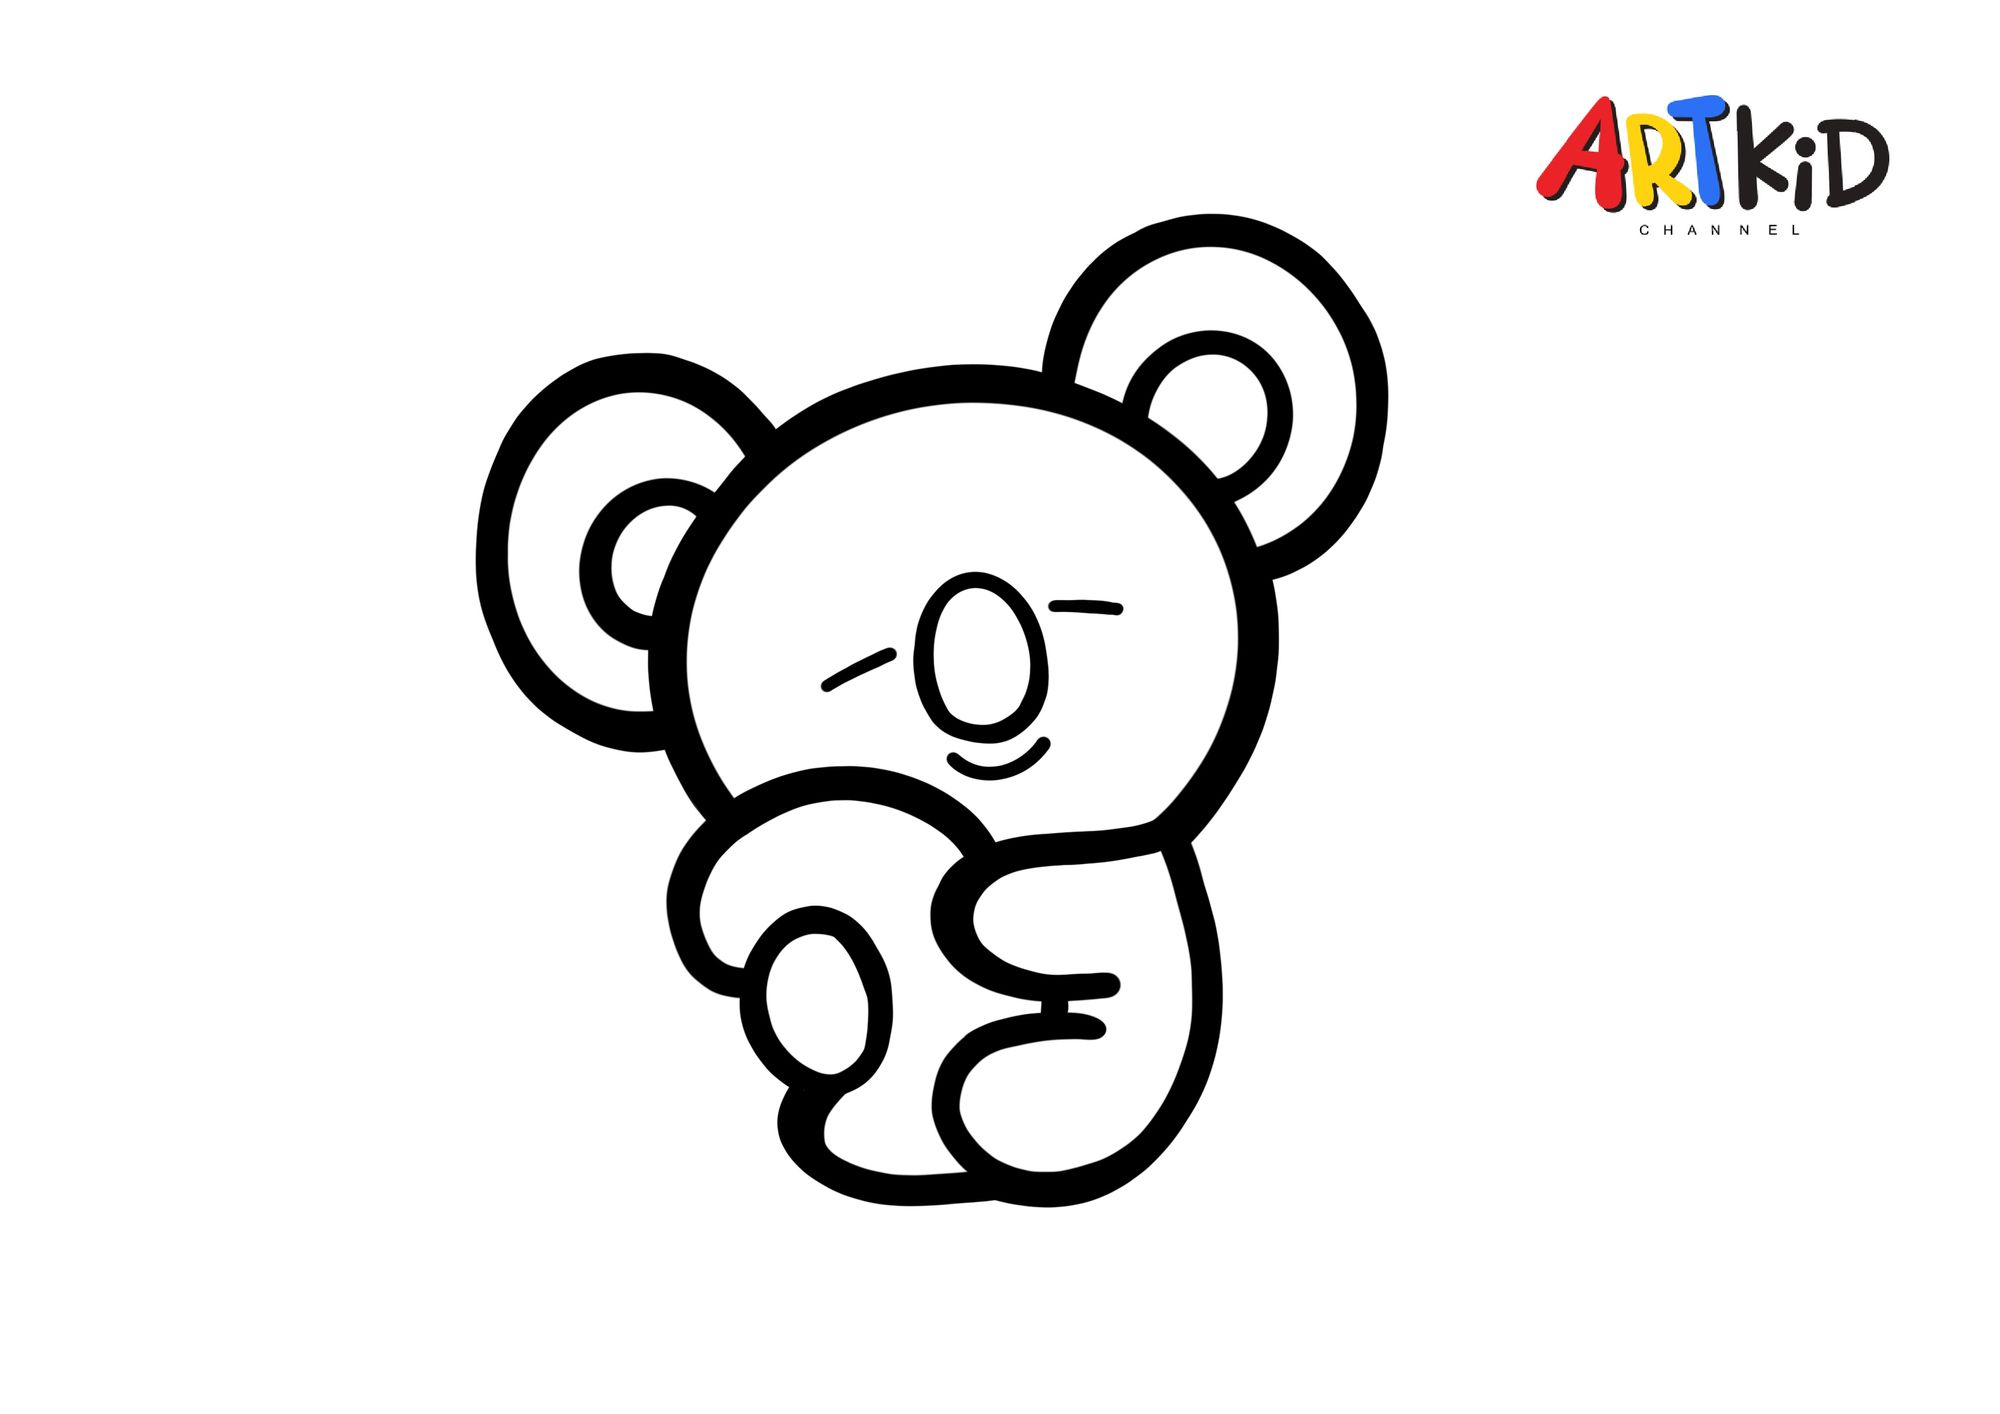 Koya Bt21 Free Printable Coloring Pages Free Printable Coloring Pages Coloring Pages Printable Coloring Pages